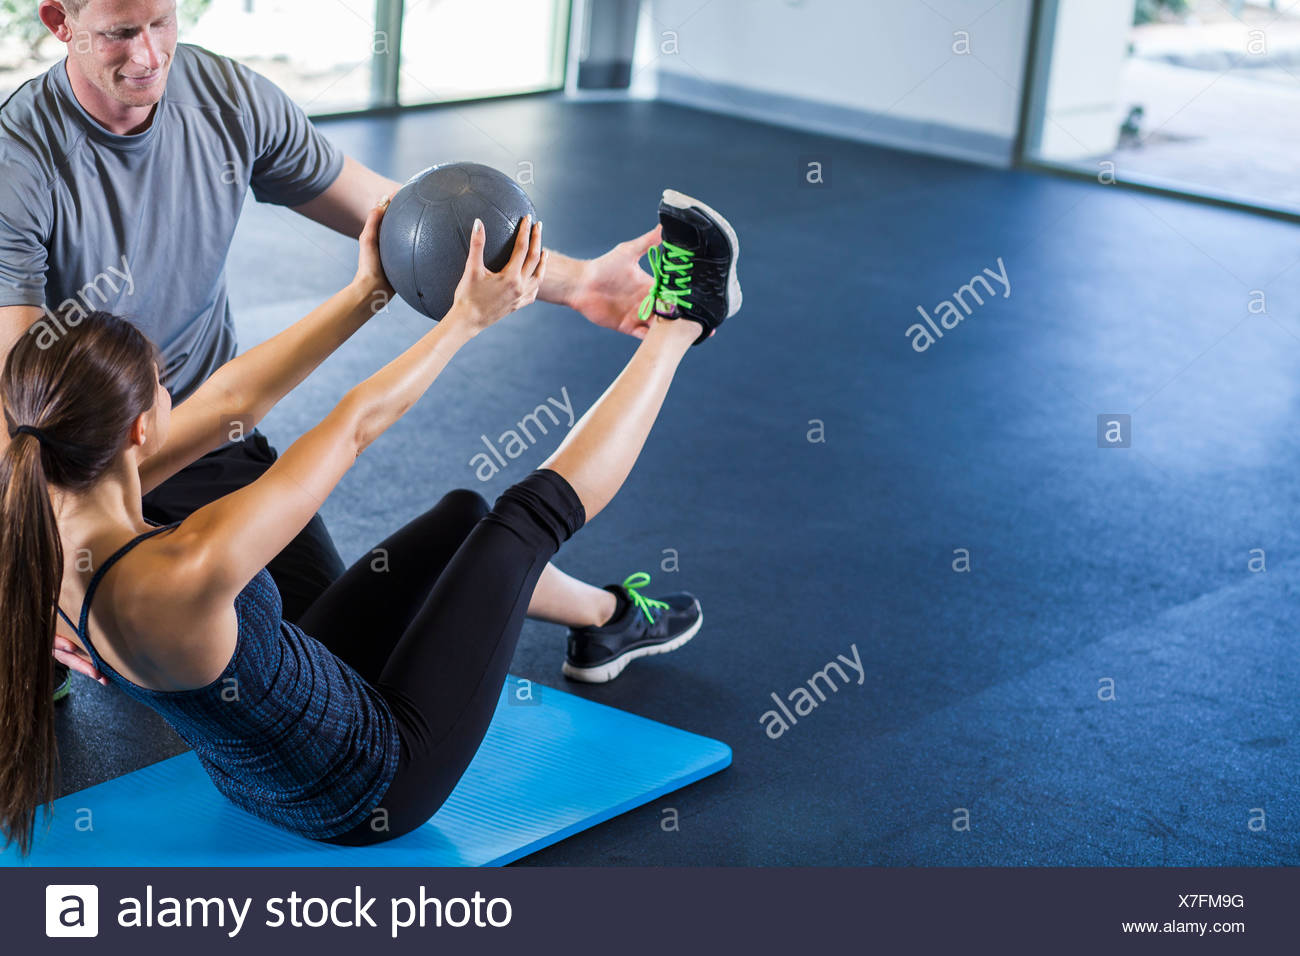 Couple working out with medicine ball - Stock Image